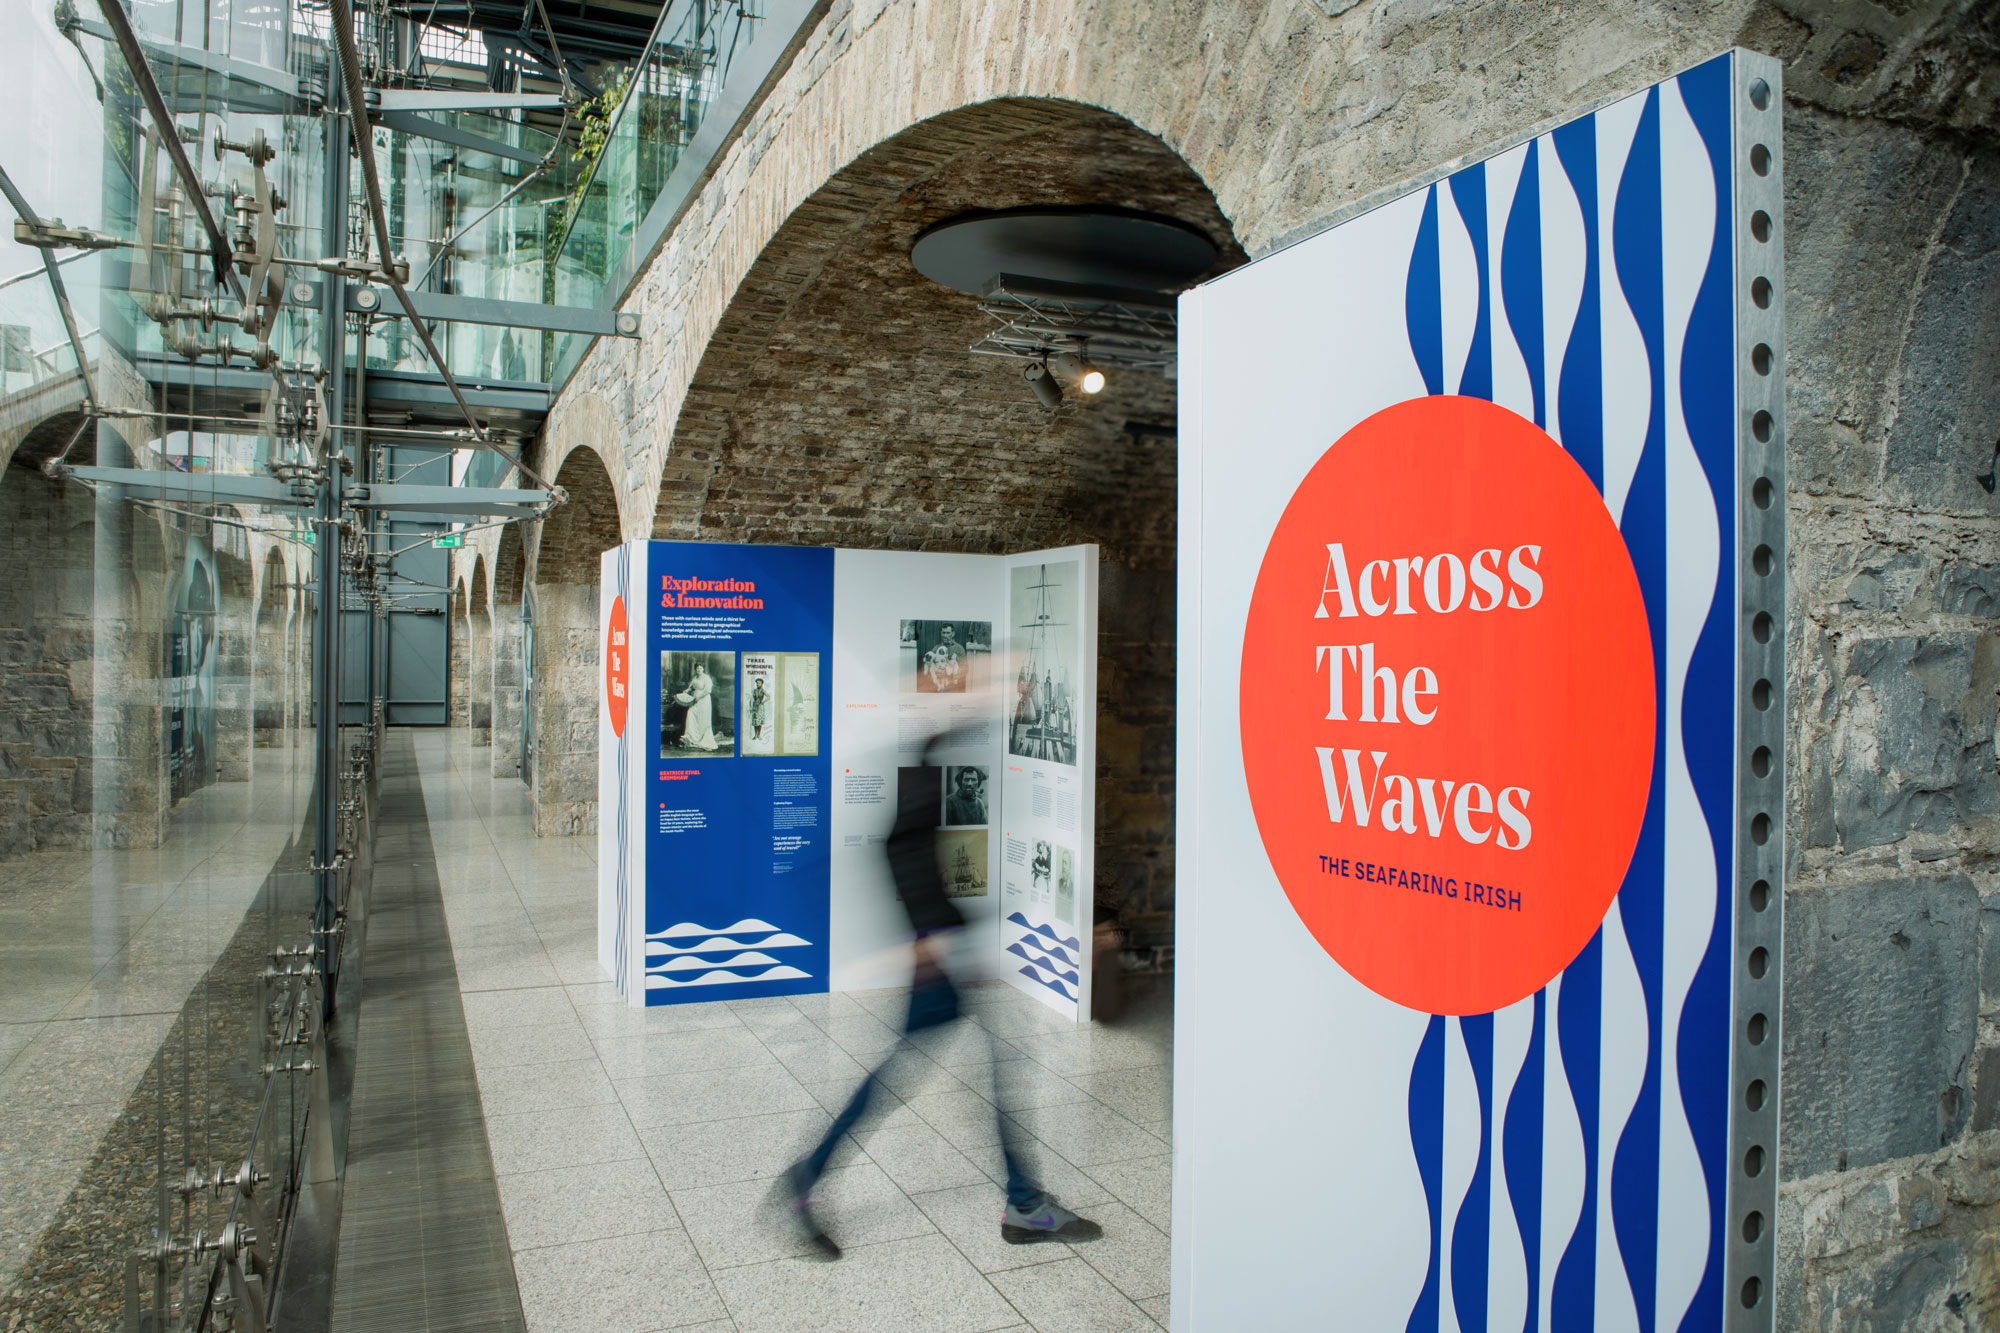 Cover image: Across The Waves Exhibition